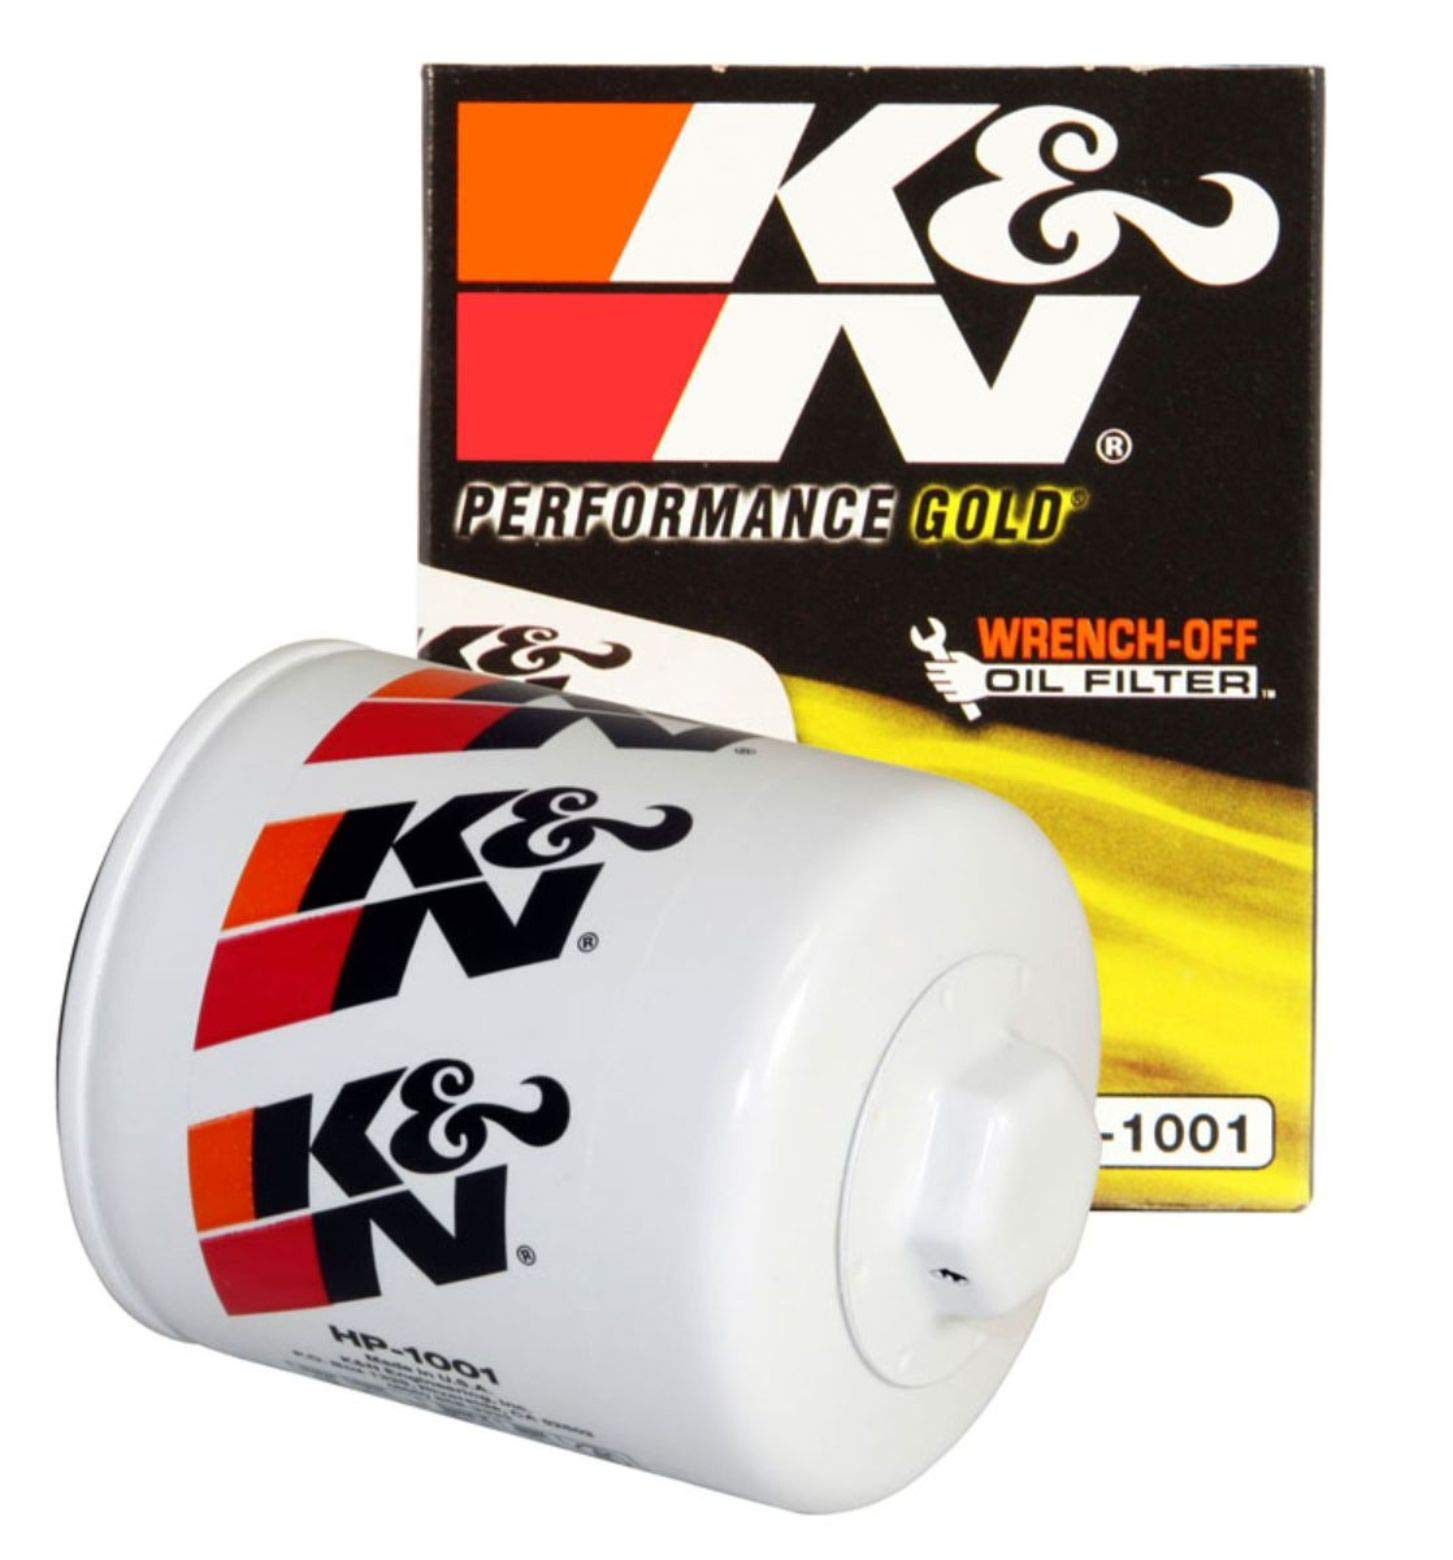 K&N Premium Oil Filter: Designed to Protect your Engine: Fits Select CHEVROLET/GMC/BUICK/PONTIAC Vehicle Models (See Product Description for Full List of Compatible Vehicles), HP-1001